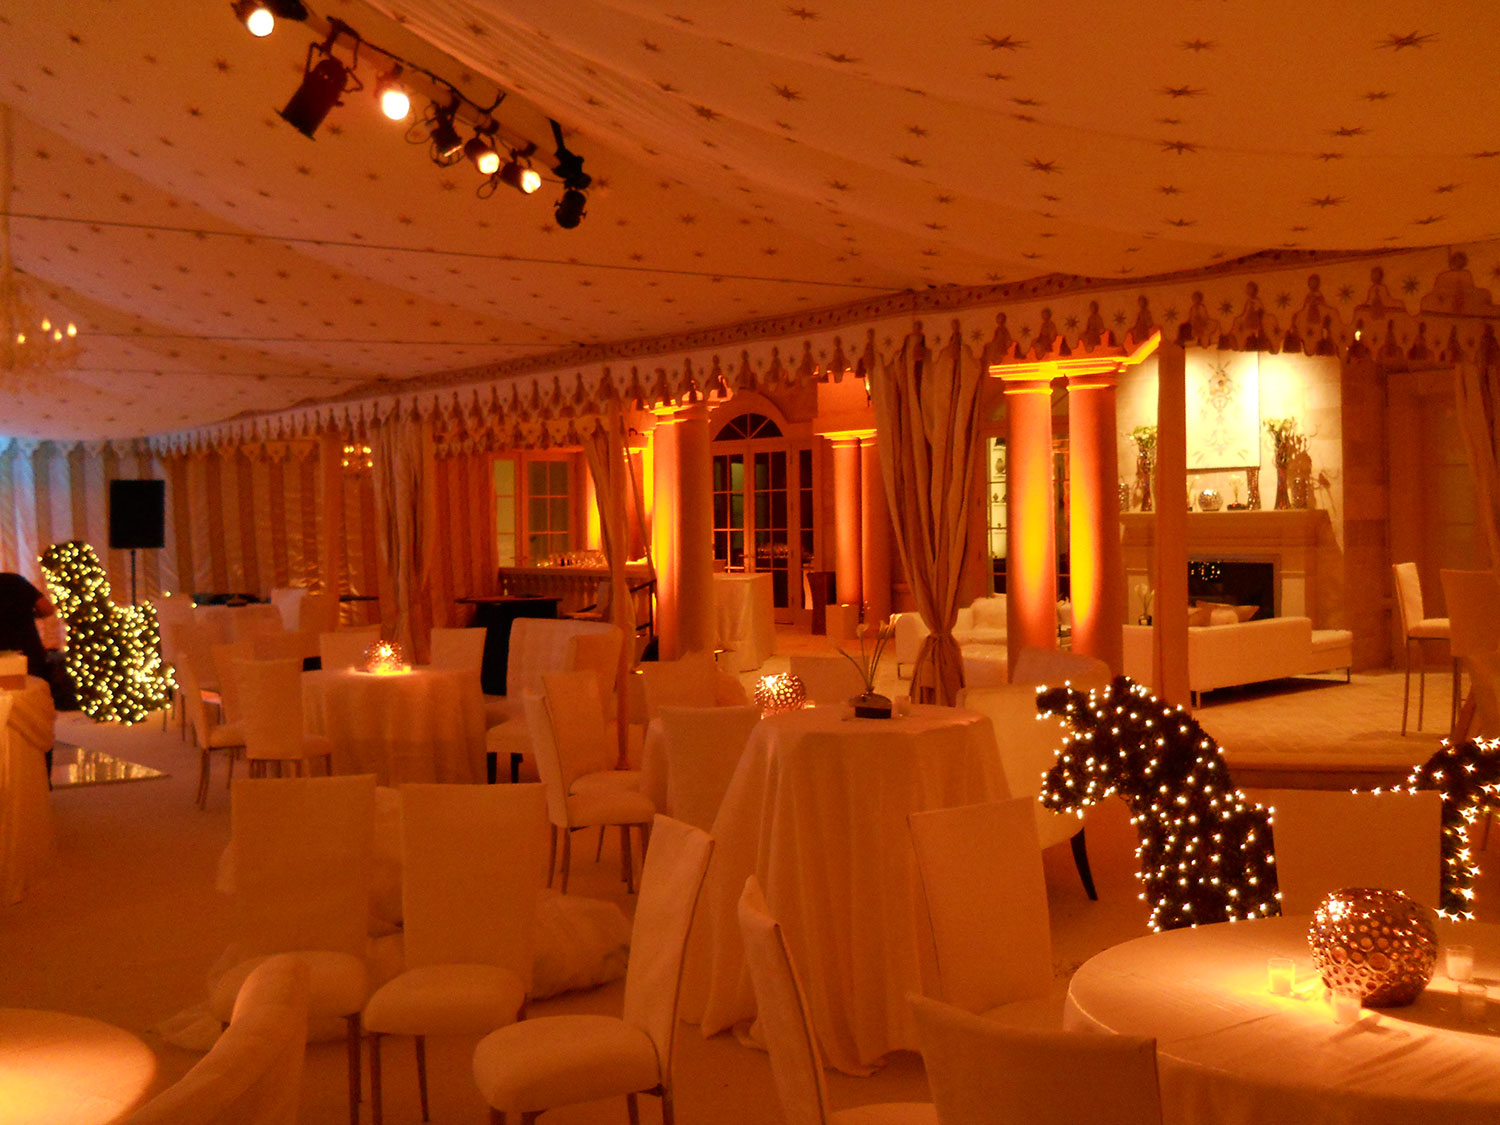 raj-tents-old-hollywood-theme-indoor-transformation.jpg